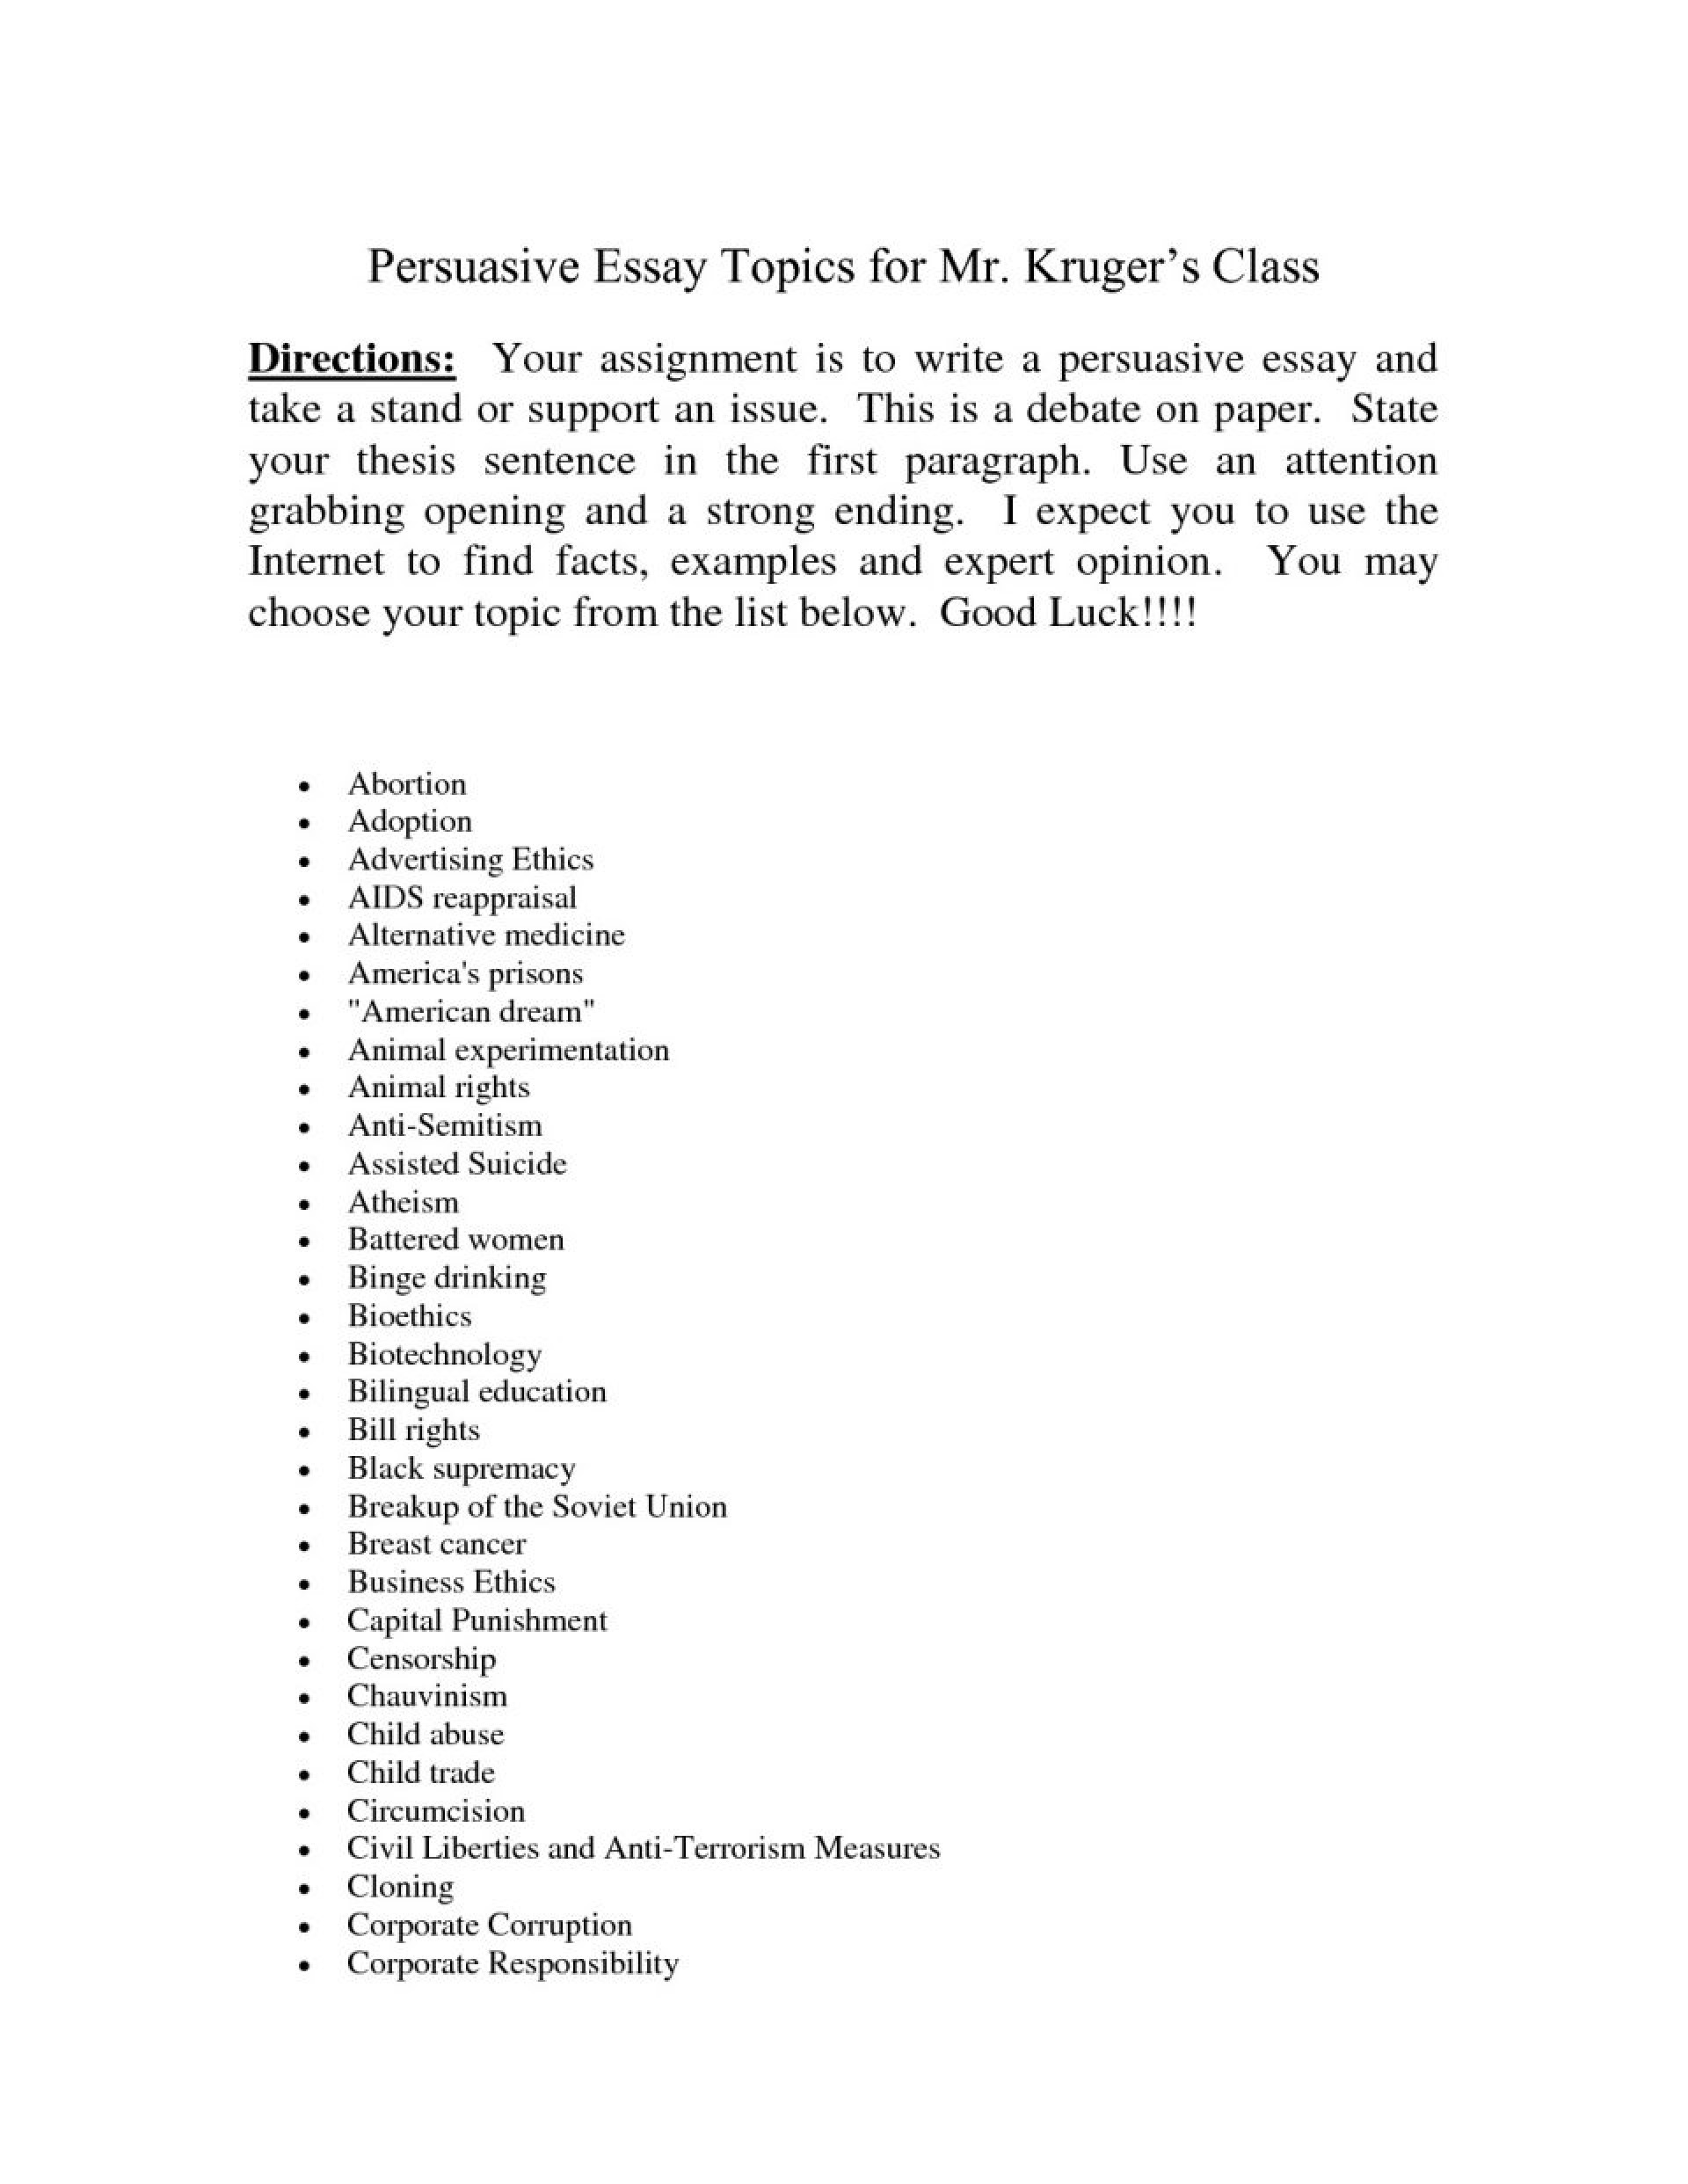 012 Research Paper Topics To Write On Topic For Essay Barca Fontanacountryinn Within Good Persuasive Narrative Abo Easy About Personal Descriptive Fearsome A Fun Ideas 1920